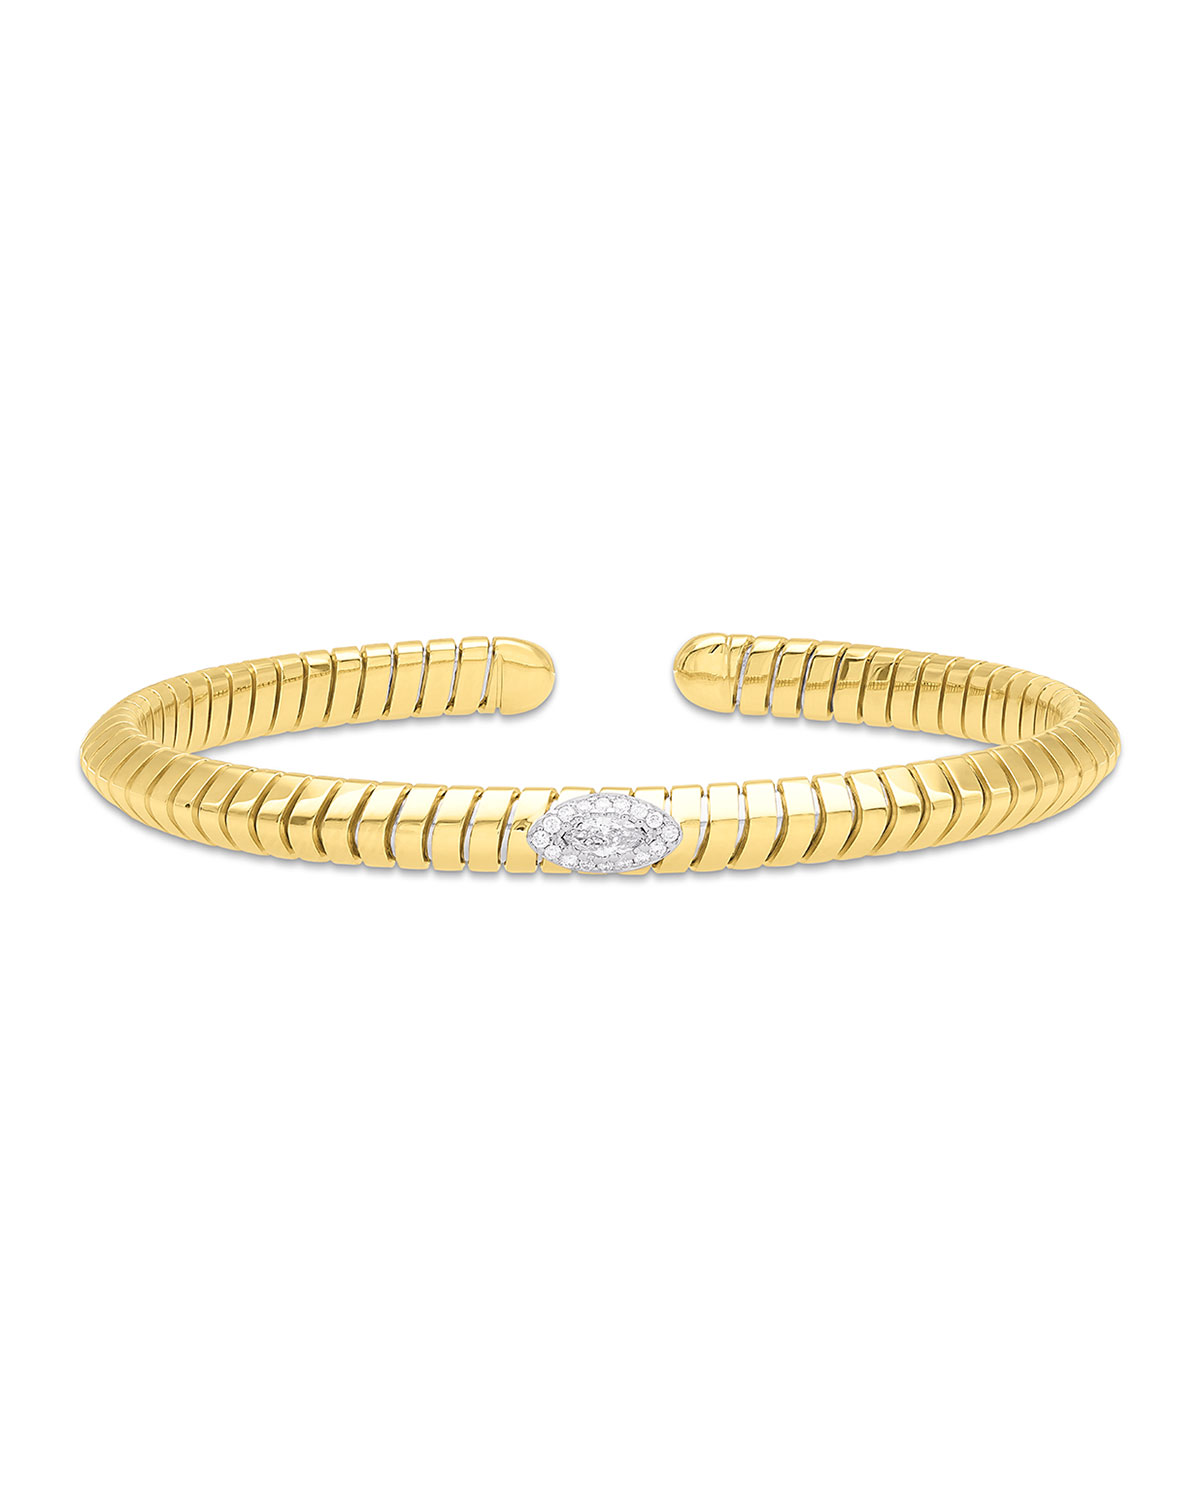 MARINA B Trisola 18K Diamond Navetta Bangle, Size L